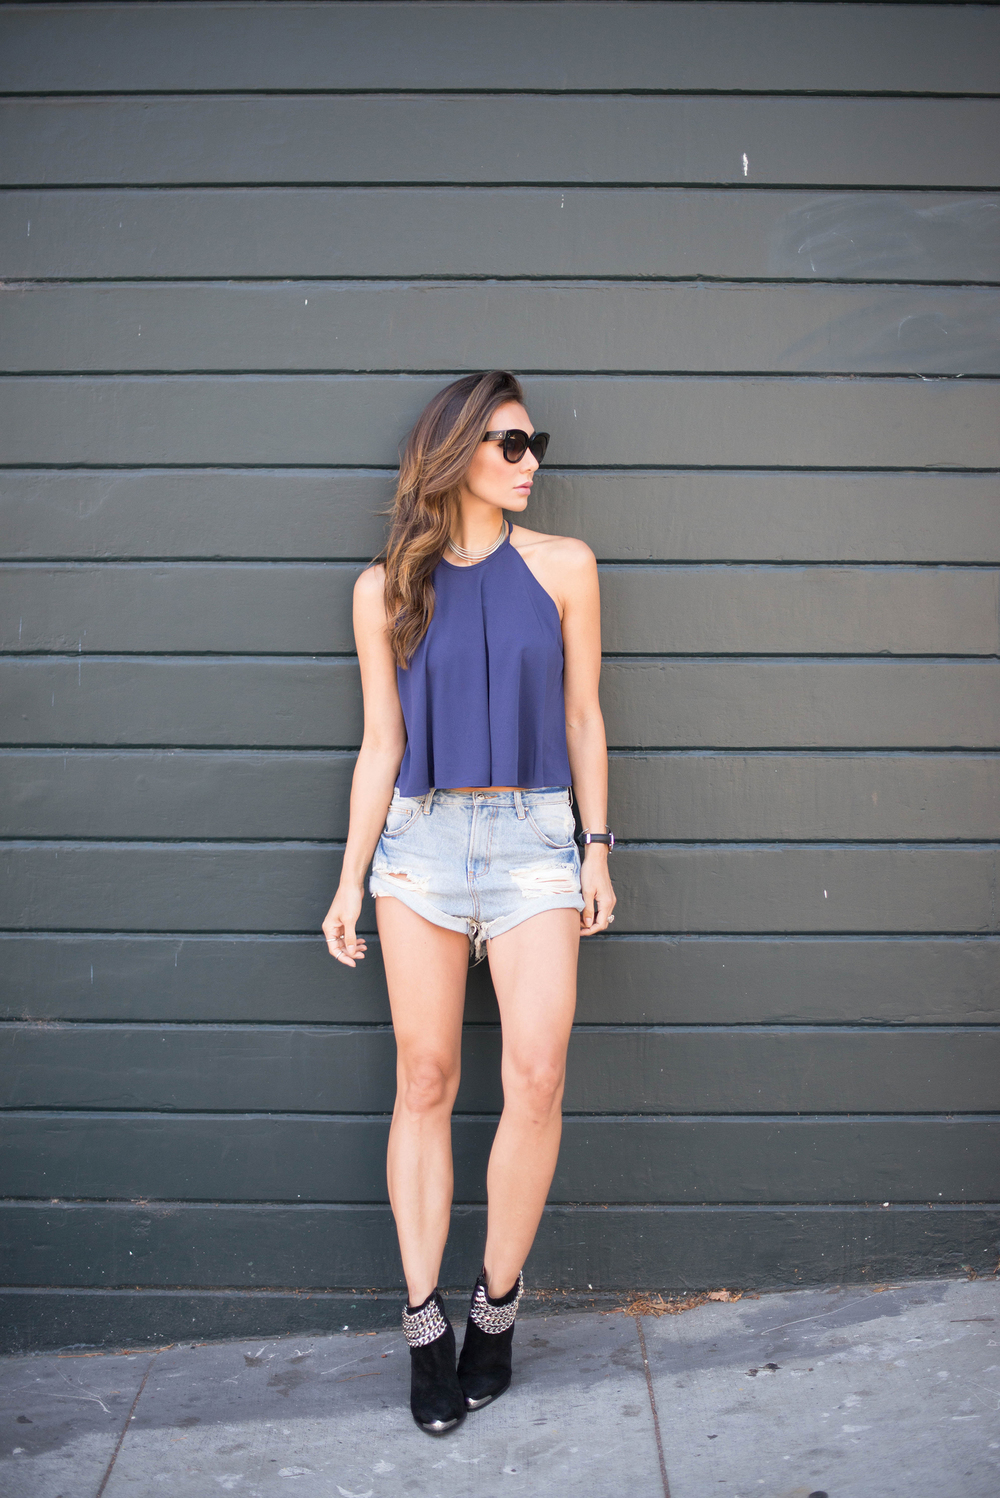 Navy halter top, ankle boots and denim shorts